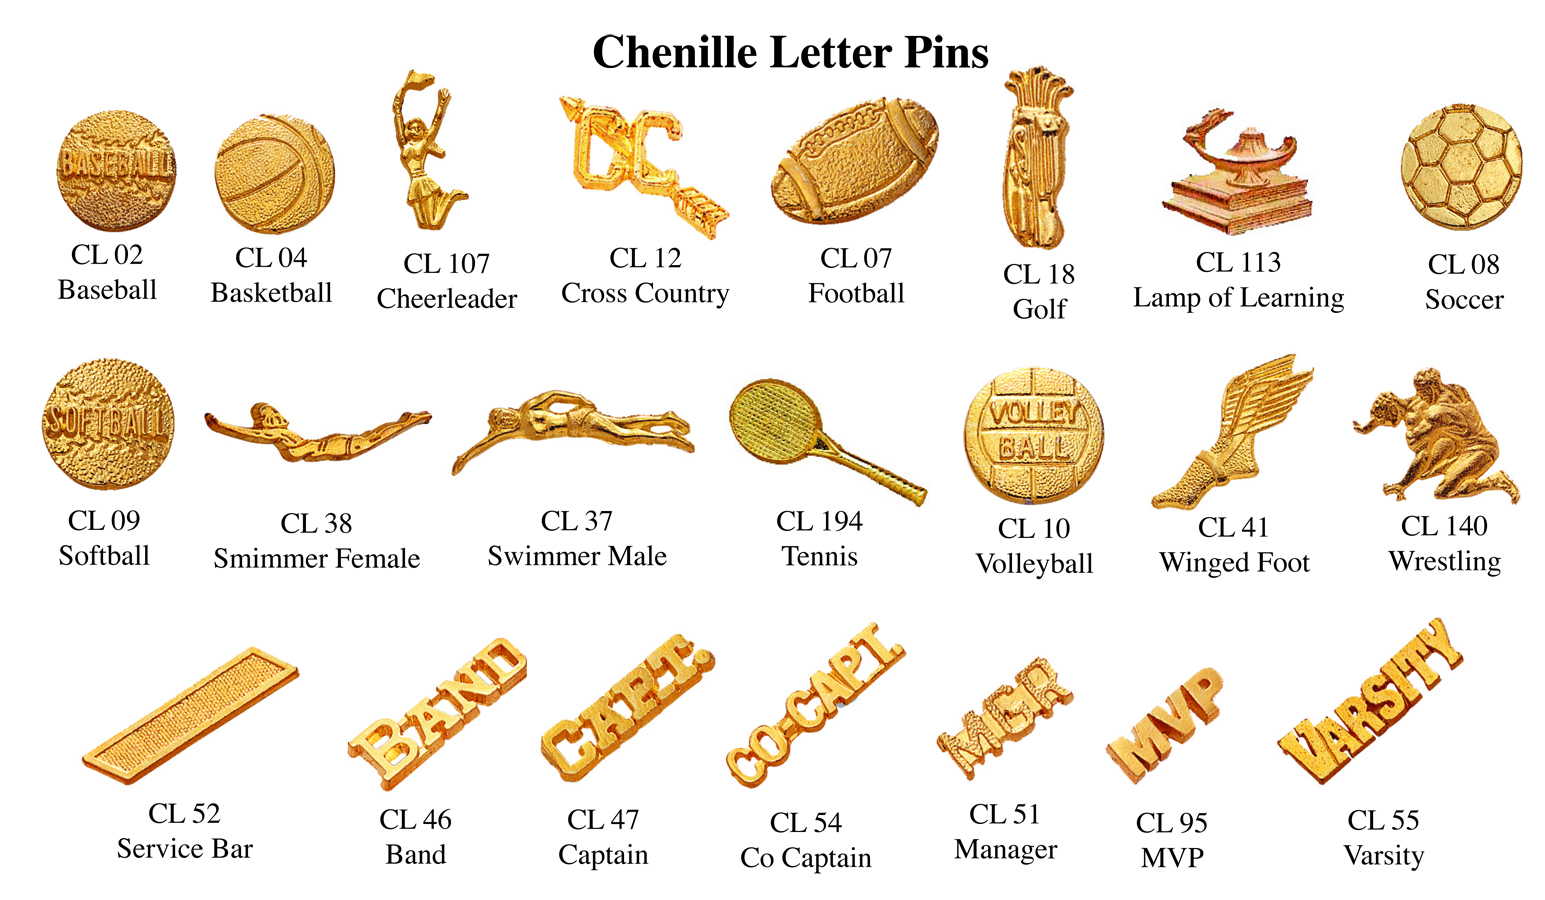 chenille letter pins